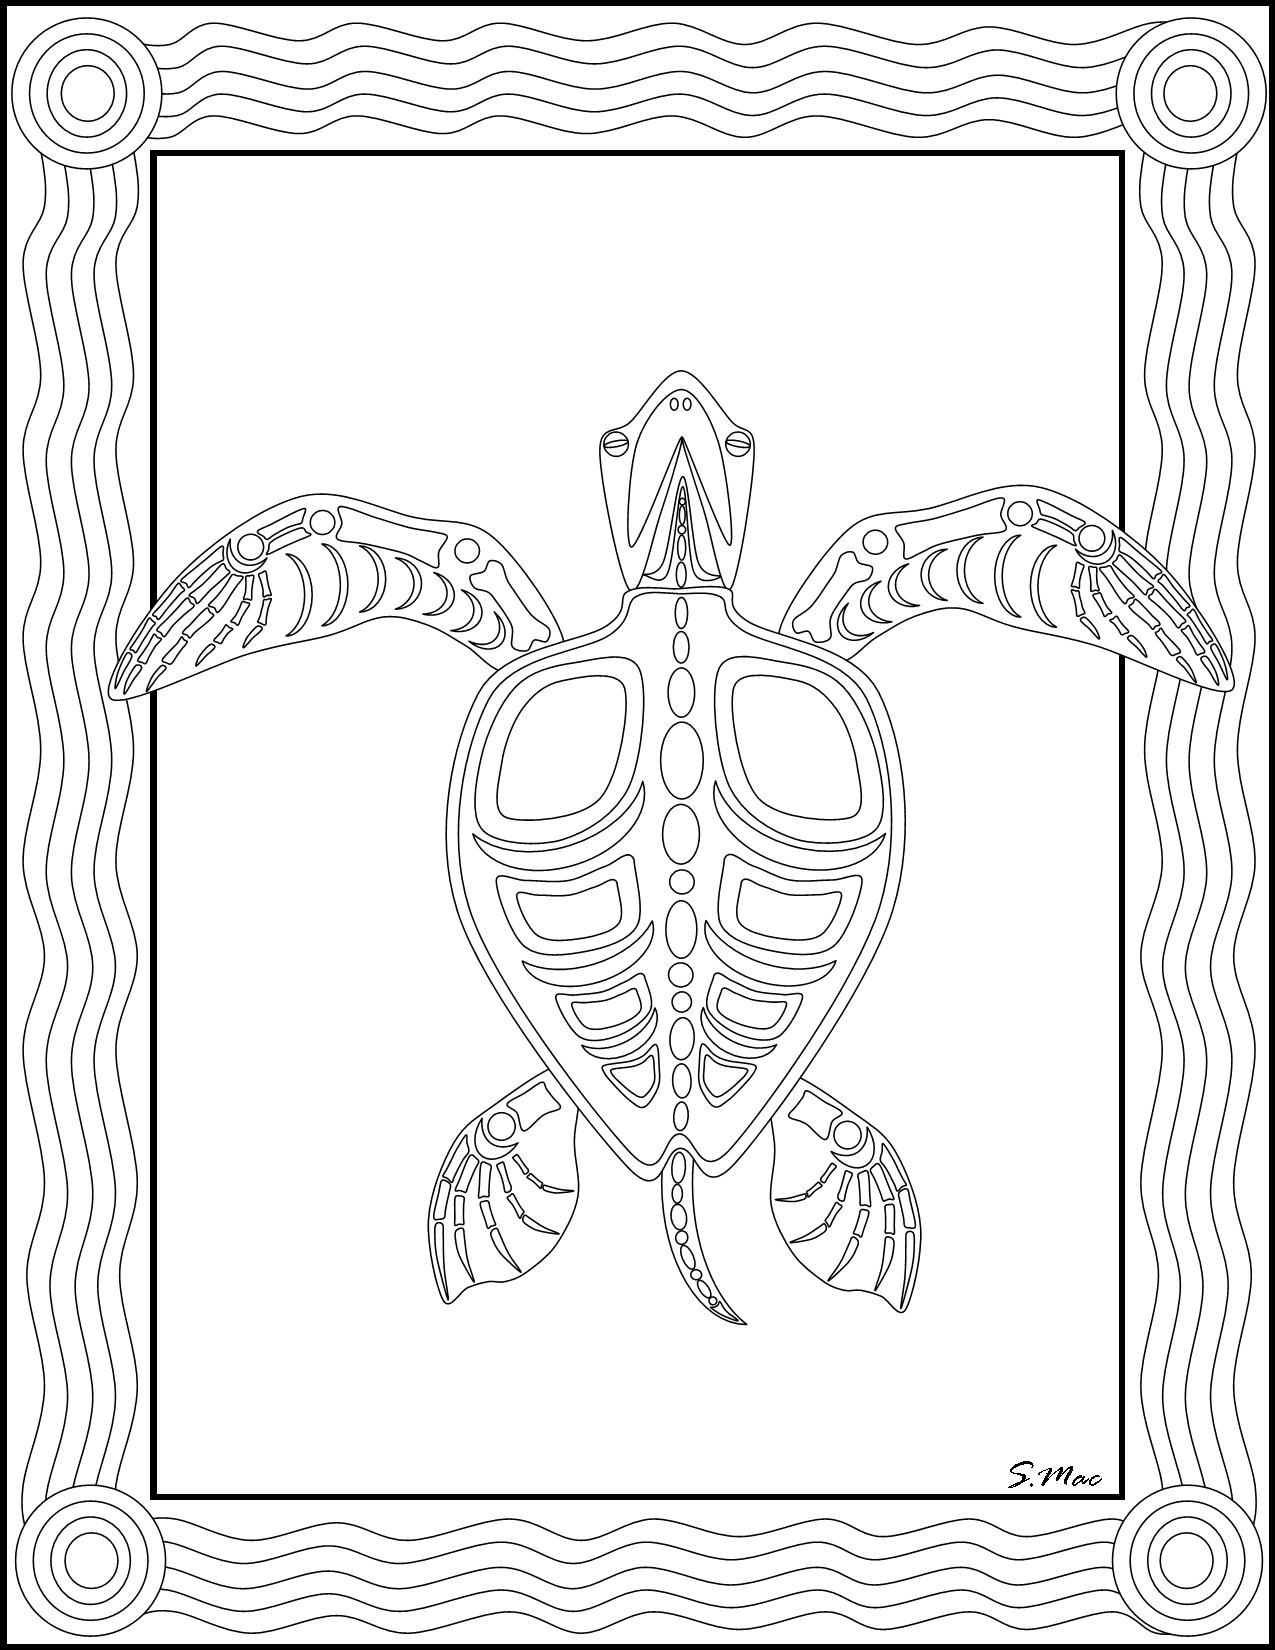 S.mac's Sea Turtle X-Ray Art Coloring Page | Art- Coloring Therapy - Free Printable Aboriginal Colouring Pages